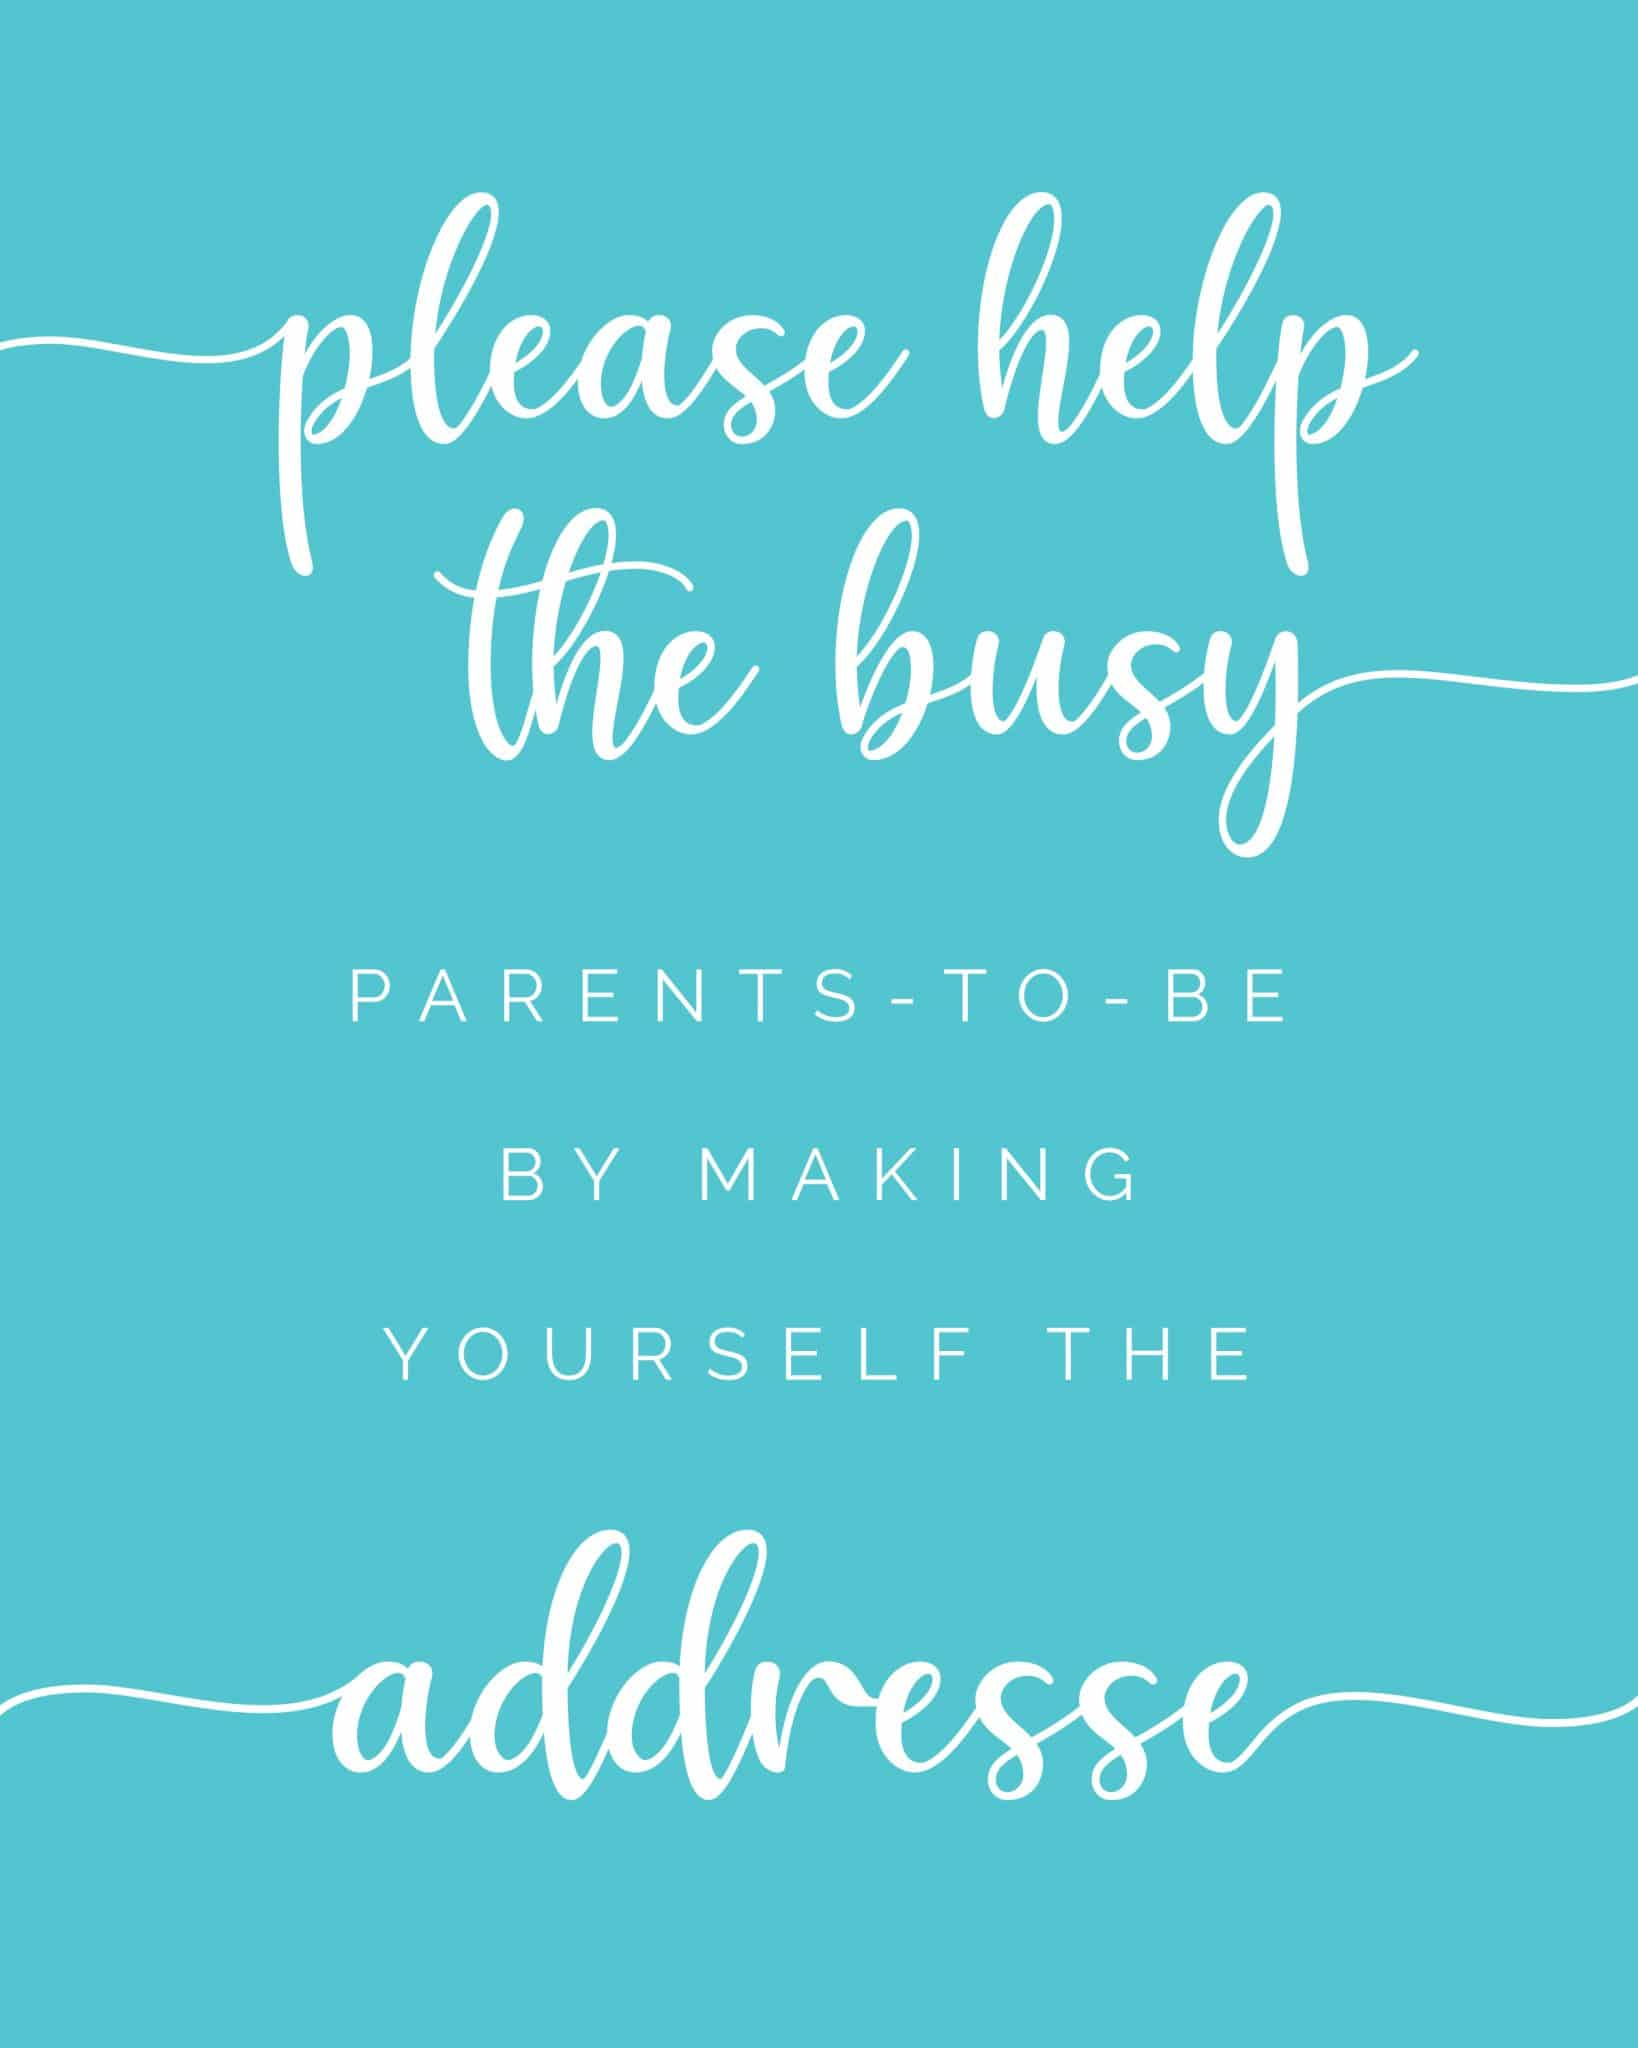 Please help the busy mom to be by making yourself the addressee - free printable